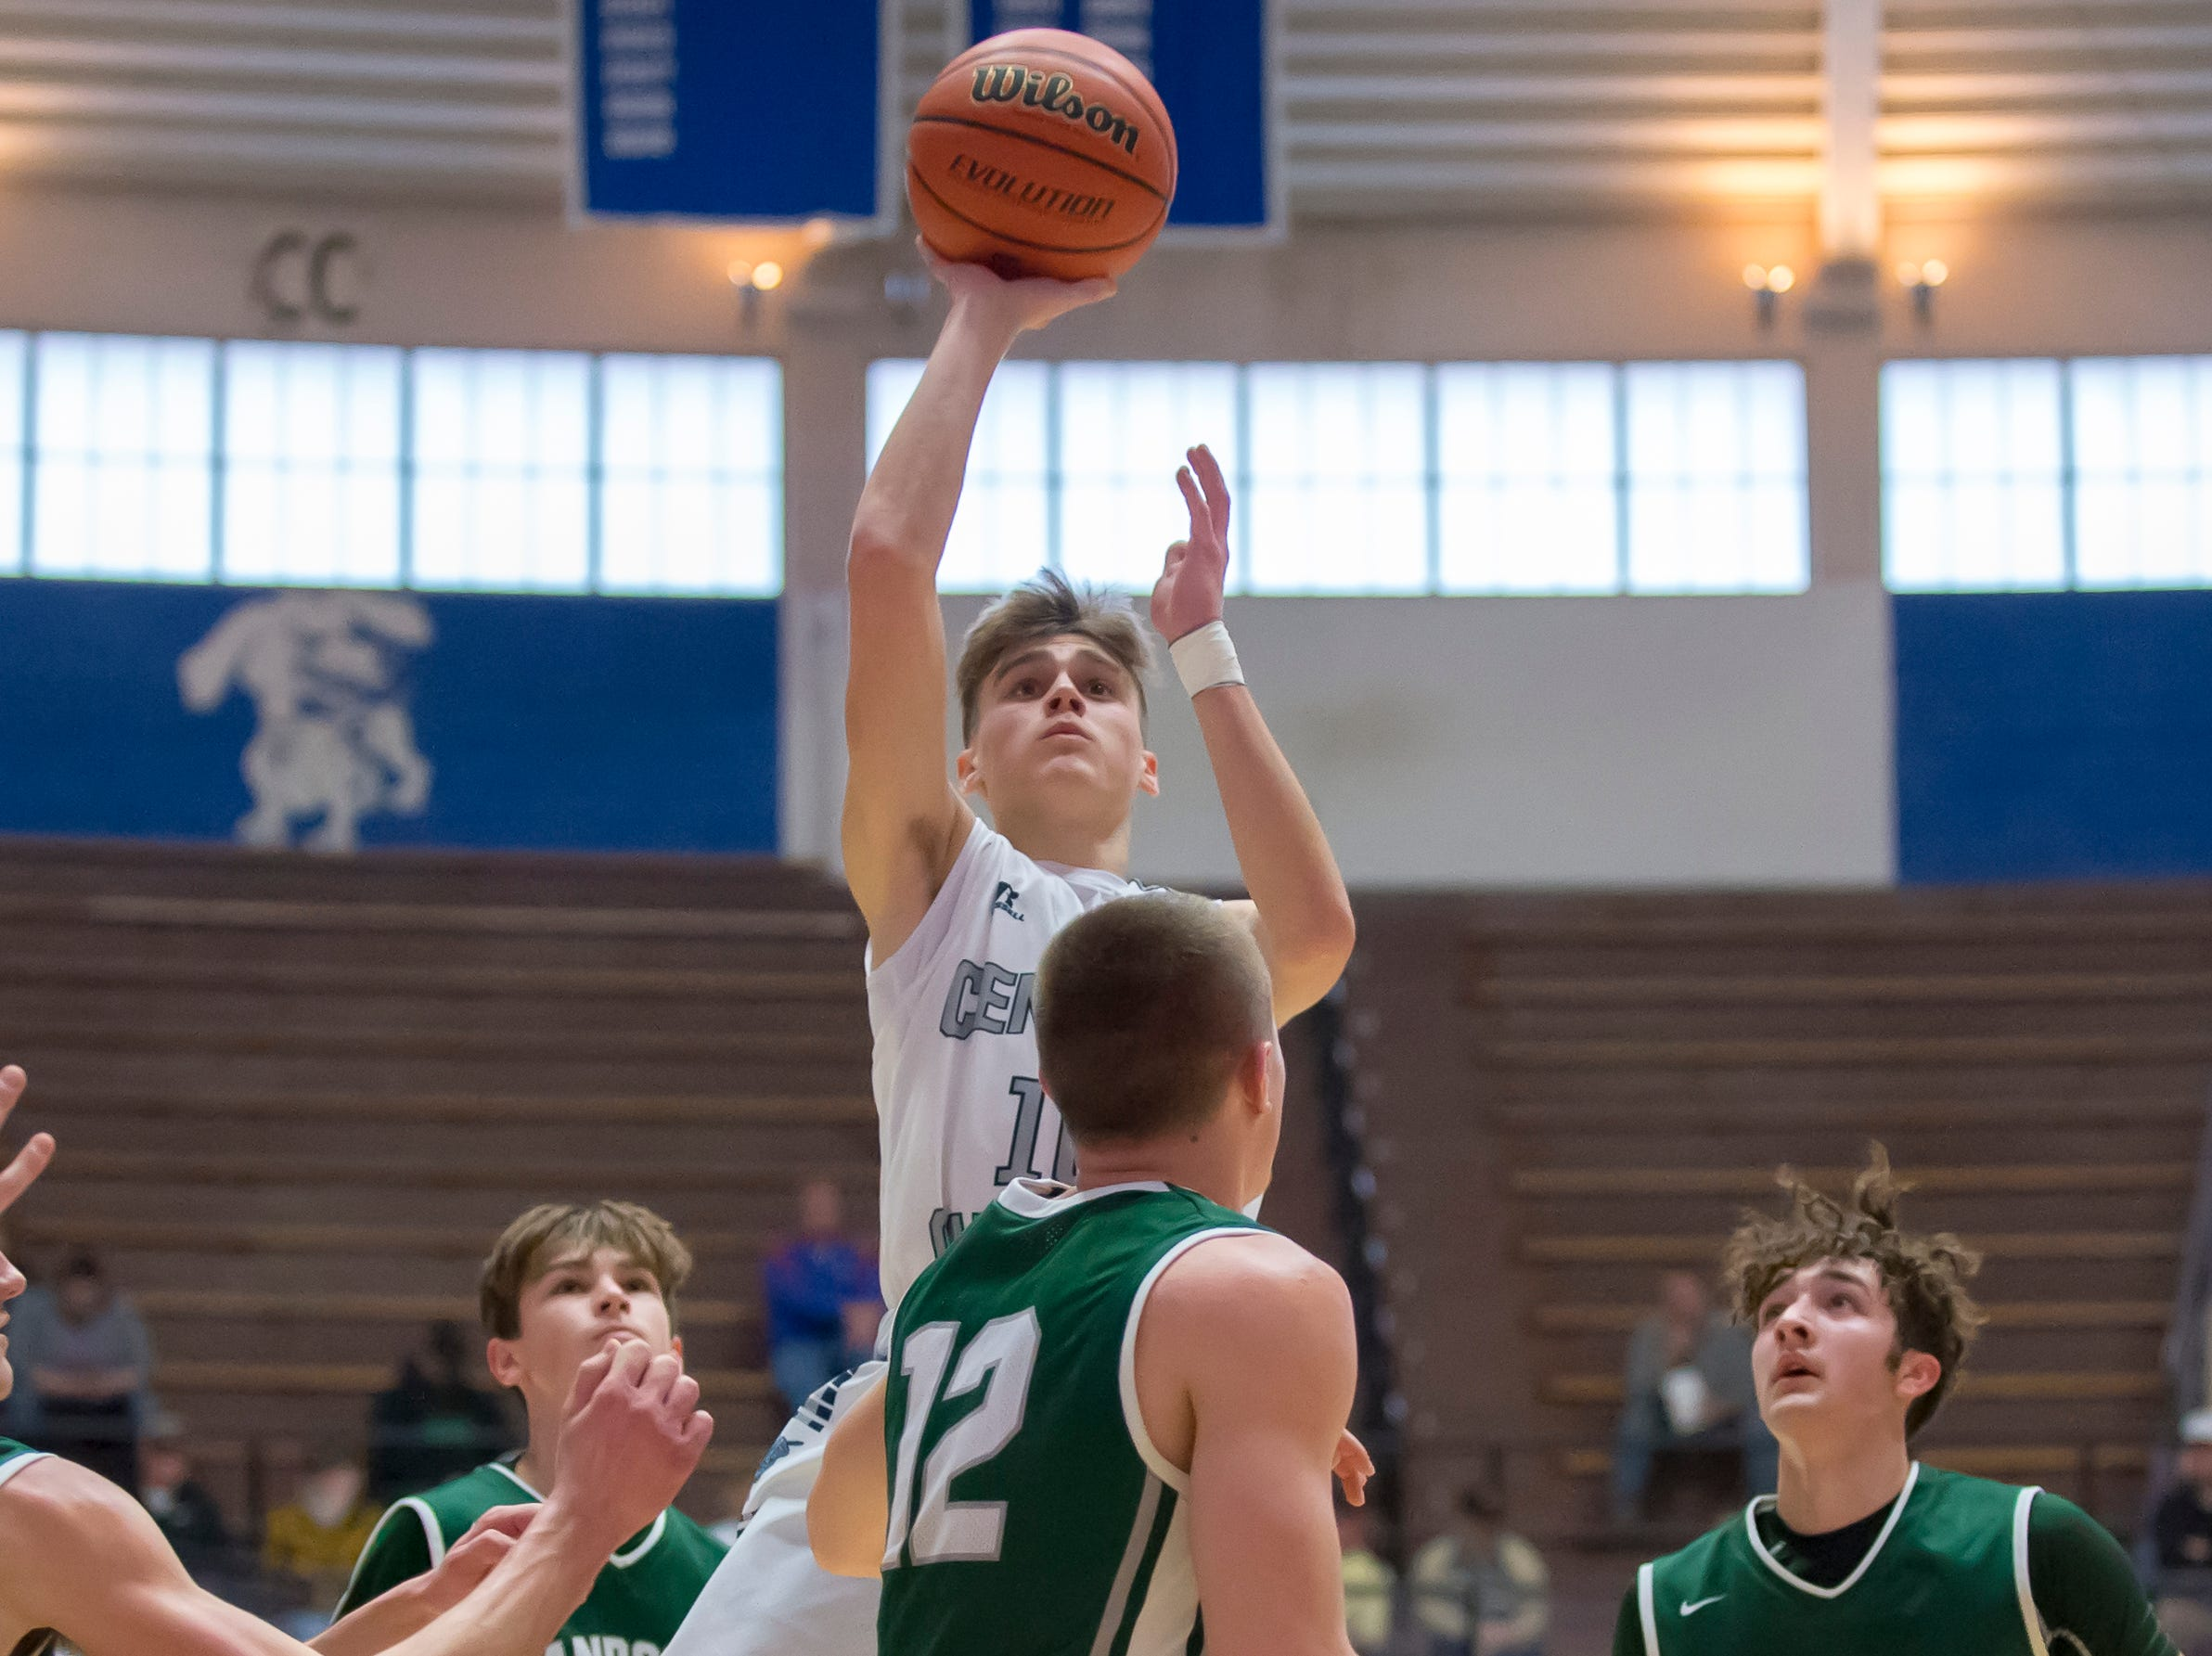 Action from the first round of the Regional between Central Catholic and Randolph Southern from Case Arena on 3/9/19 - Brenner Oliver